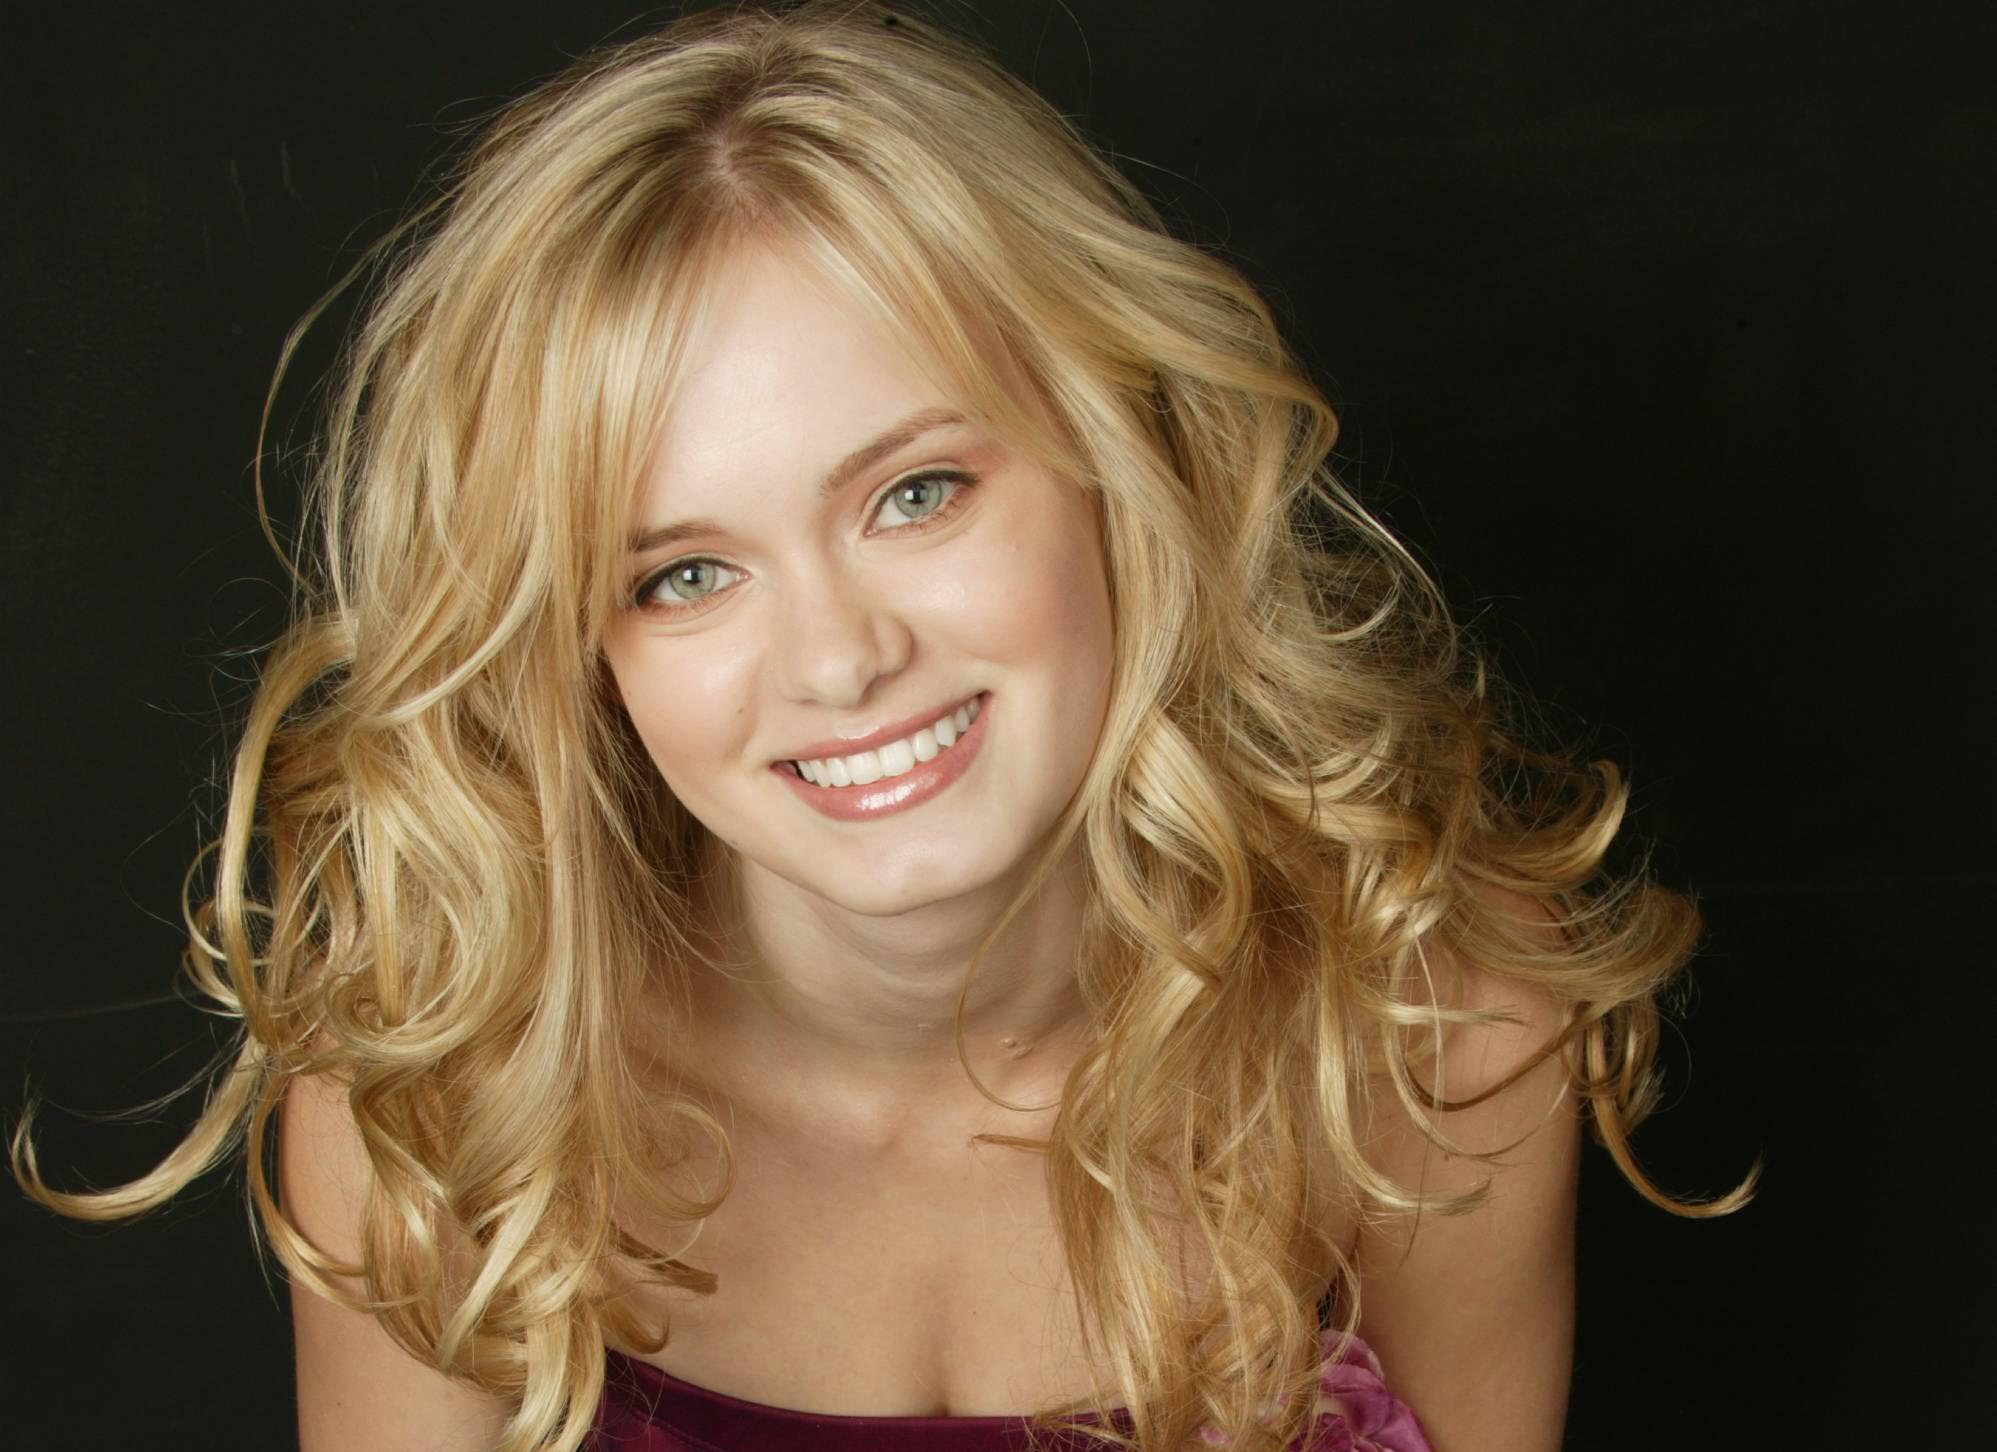 Sara Paxton Backgrounds, Compatible - PC, Mobile, Gadgets| 1997x1452 px